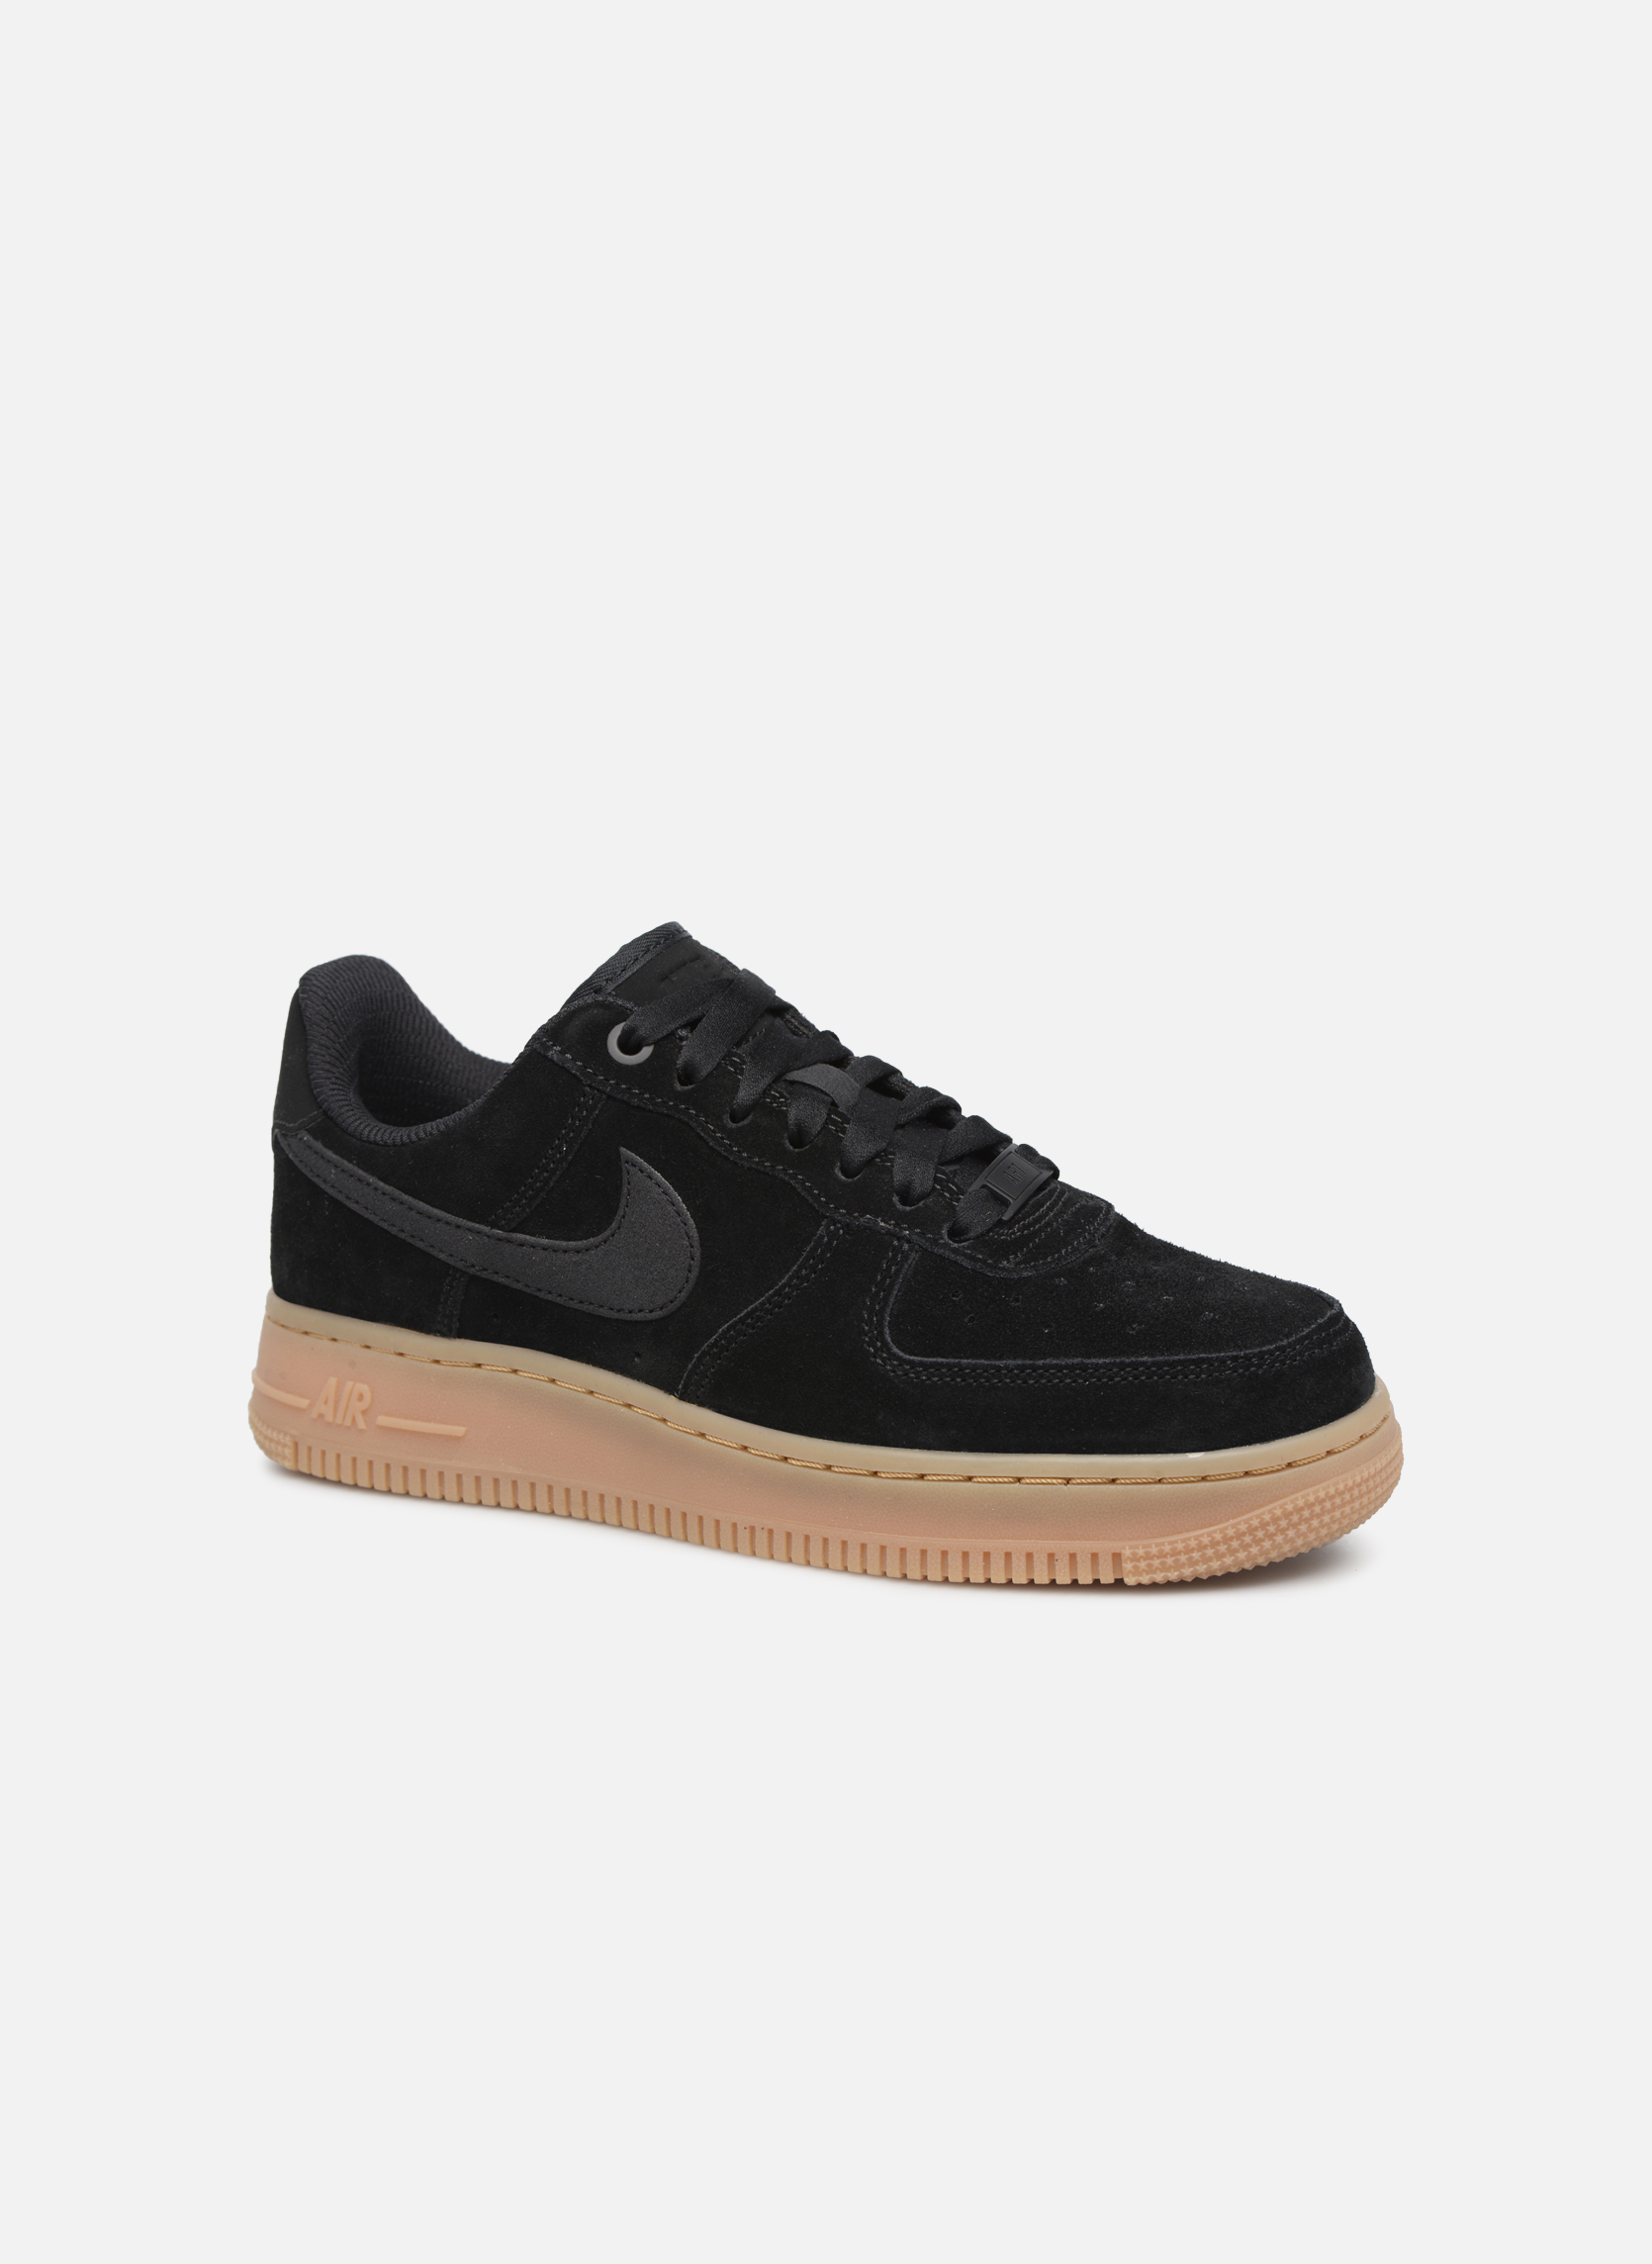 Black/Black-Gum Med Brown-Ivory